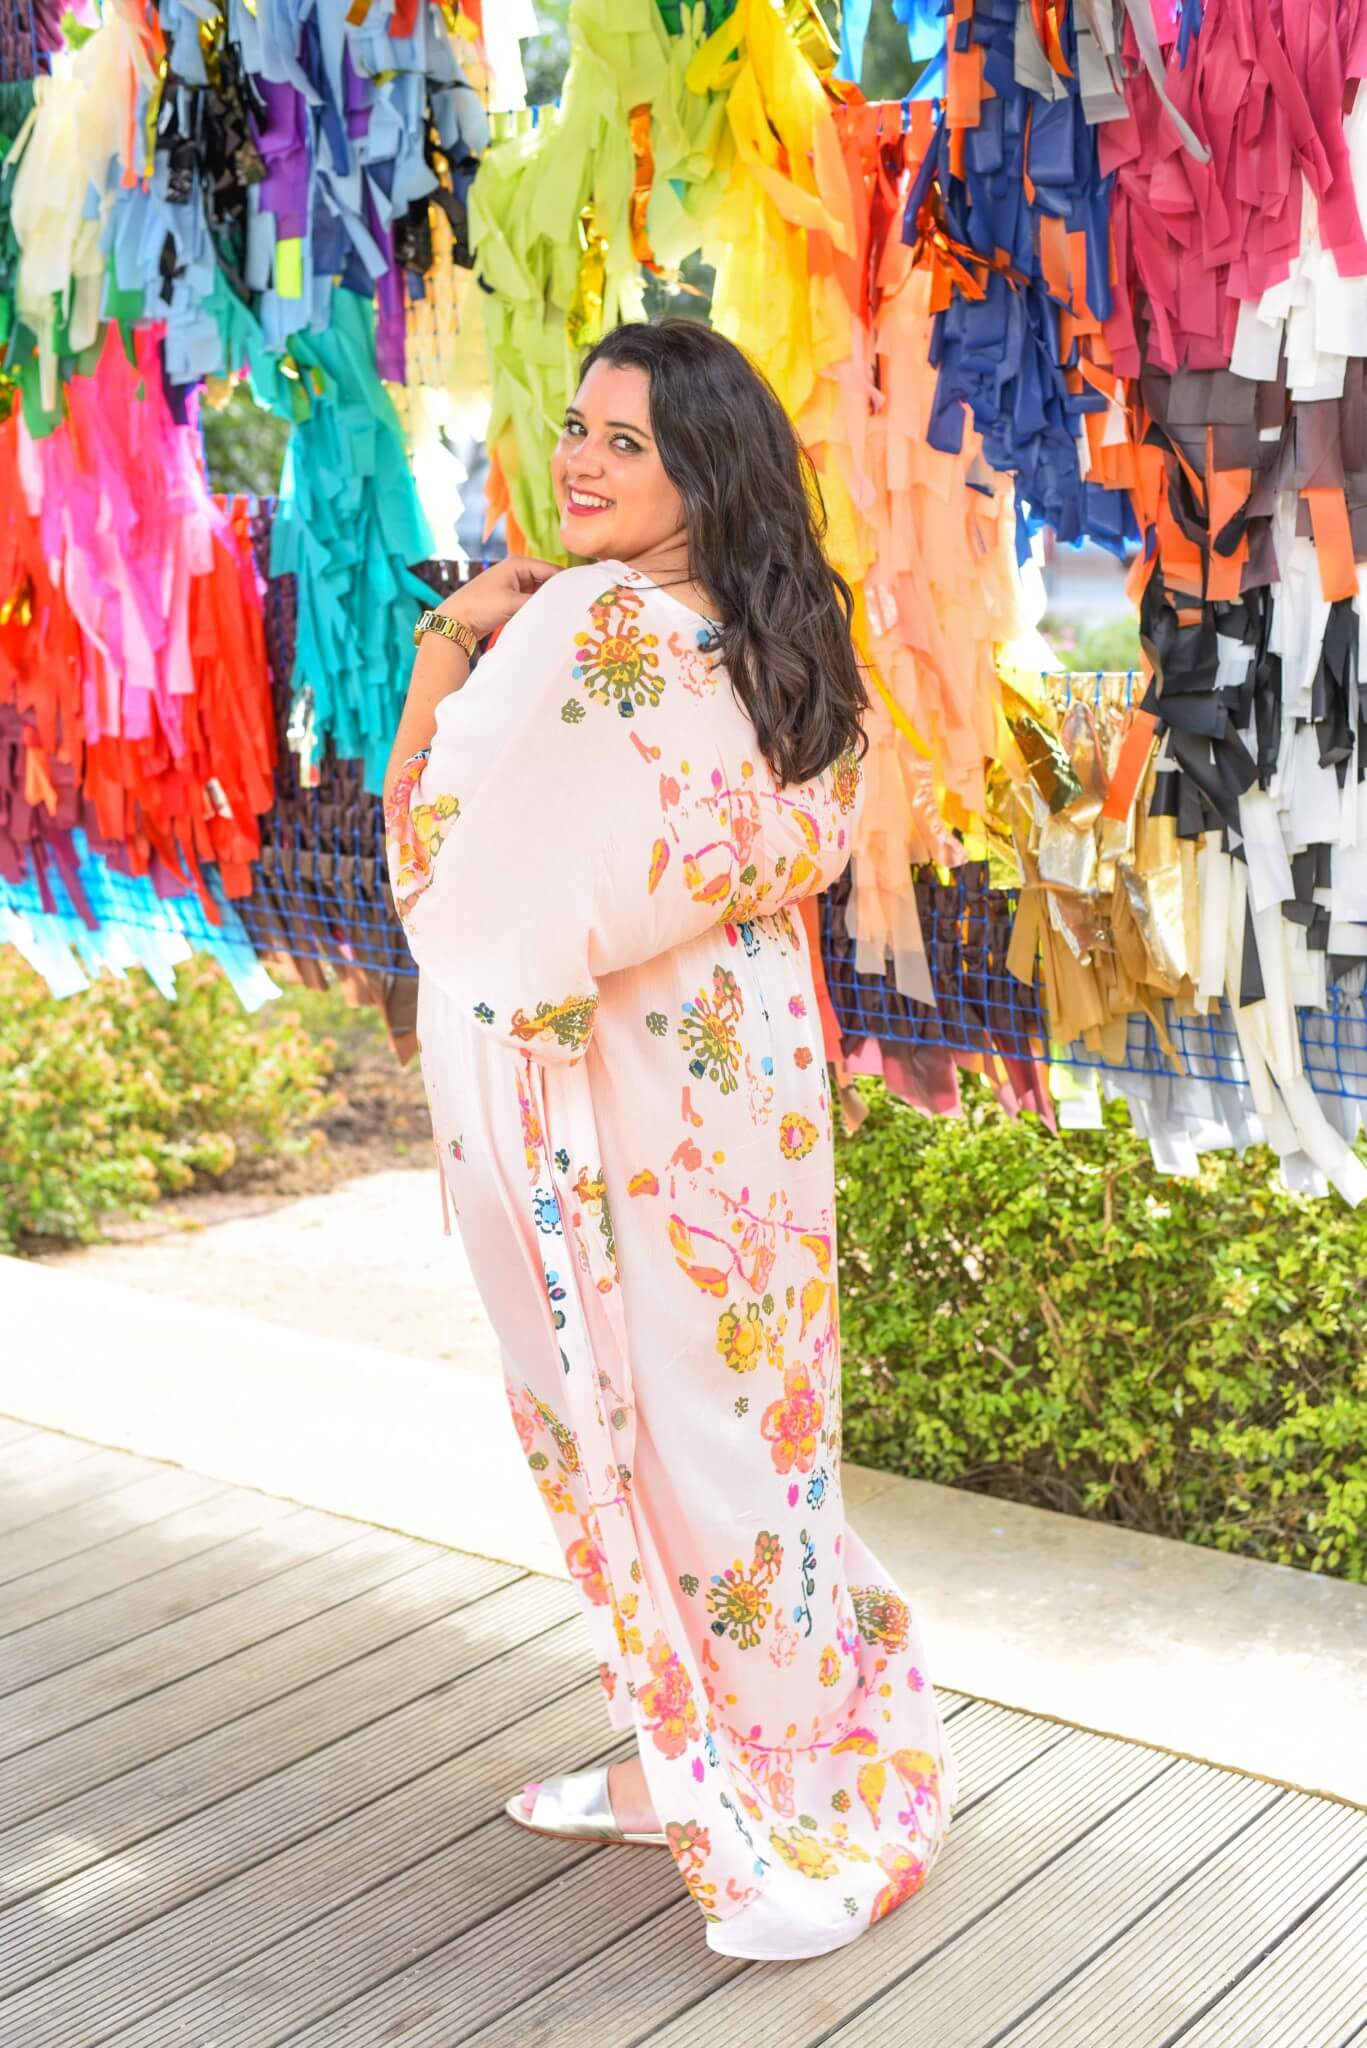 A fun, flirty maxi dress is perfect for a day time date (or day spent with friends) exploring new art installations. This plus size maxi dress from Melissa McCarthy Seven7 can be worn casually or glammed up for an evening out. #plussizefashion #bohemianfashion #curvystyle - Gwynnie Bee outfit by popular Houston fashion blogger Something Gold, Something Blue